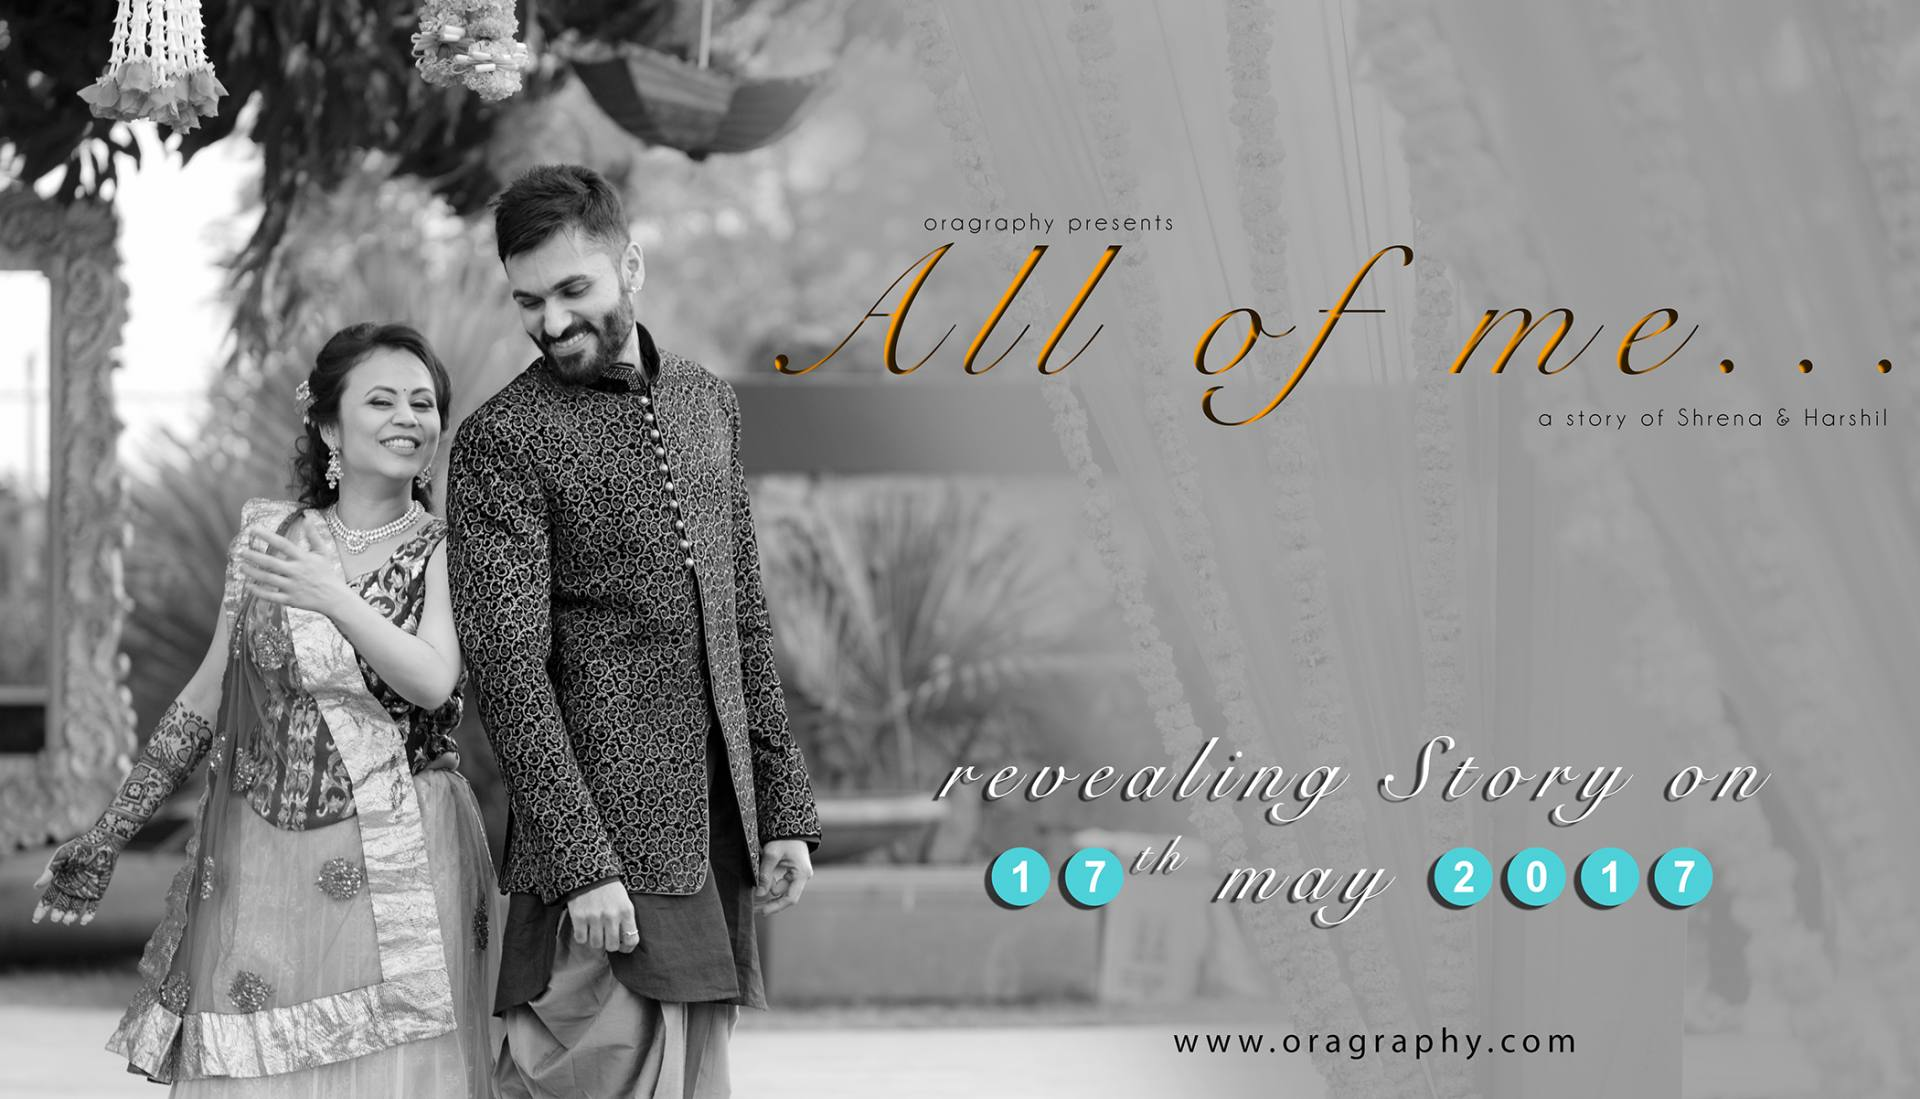 All of me | Shrena weds Harshil | oragraphy